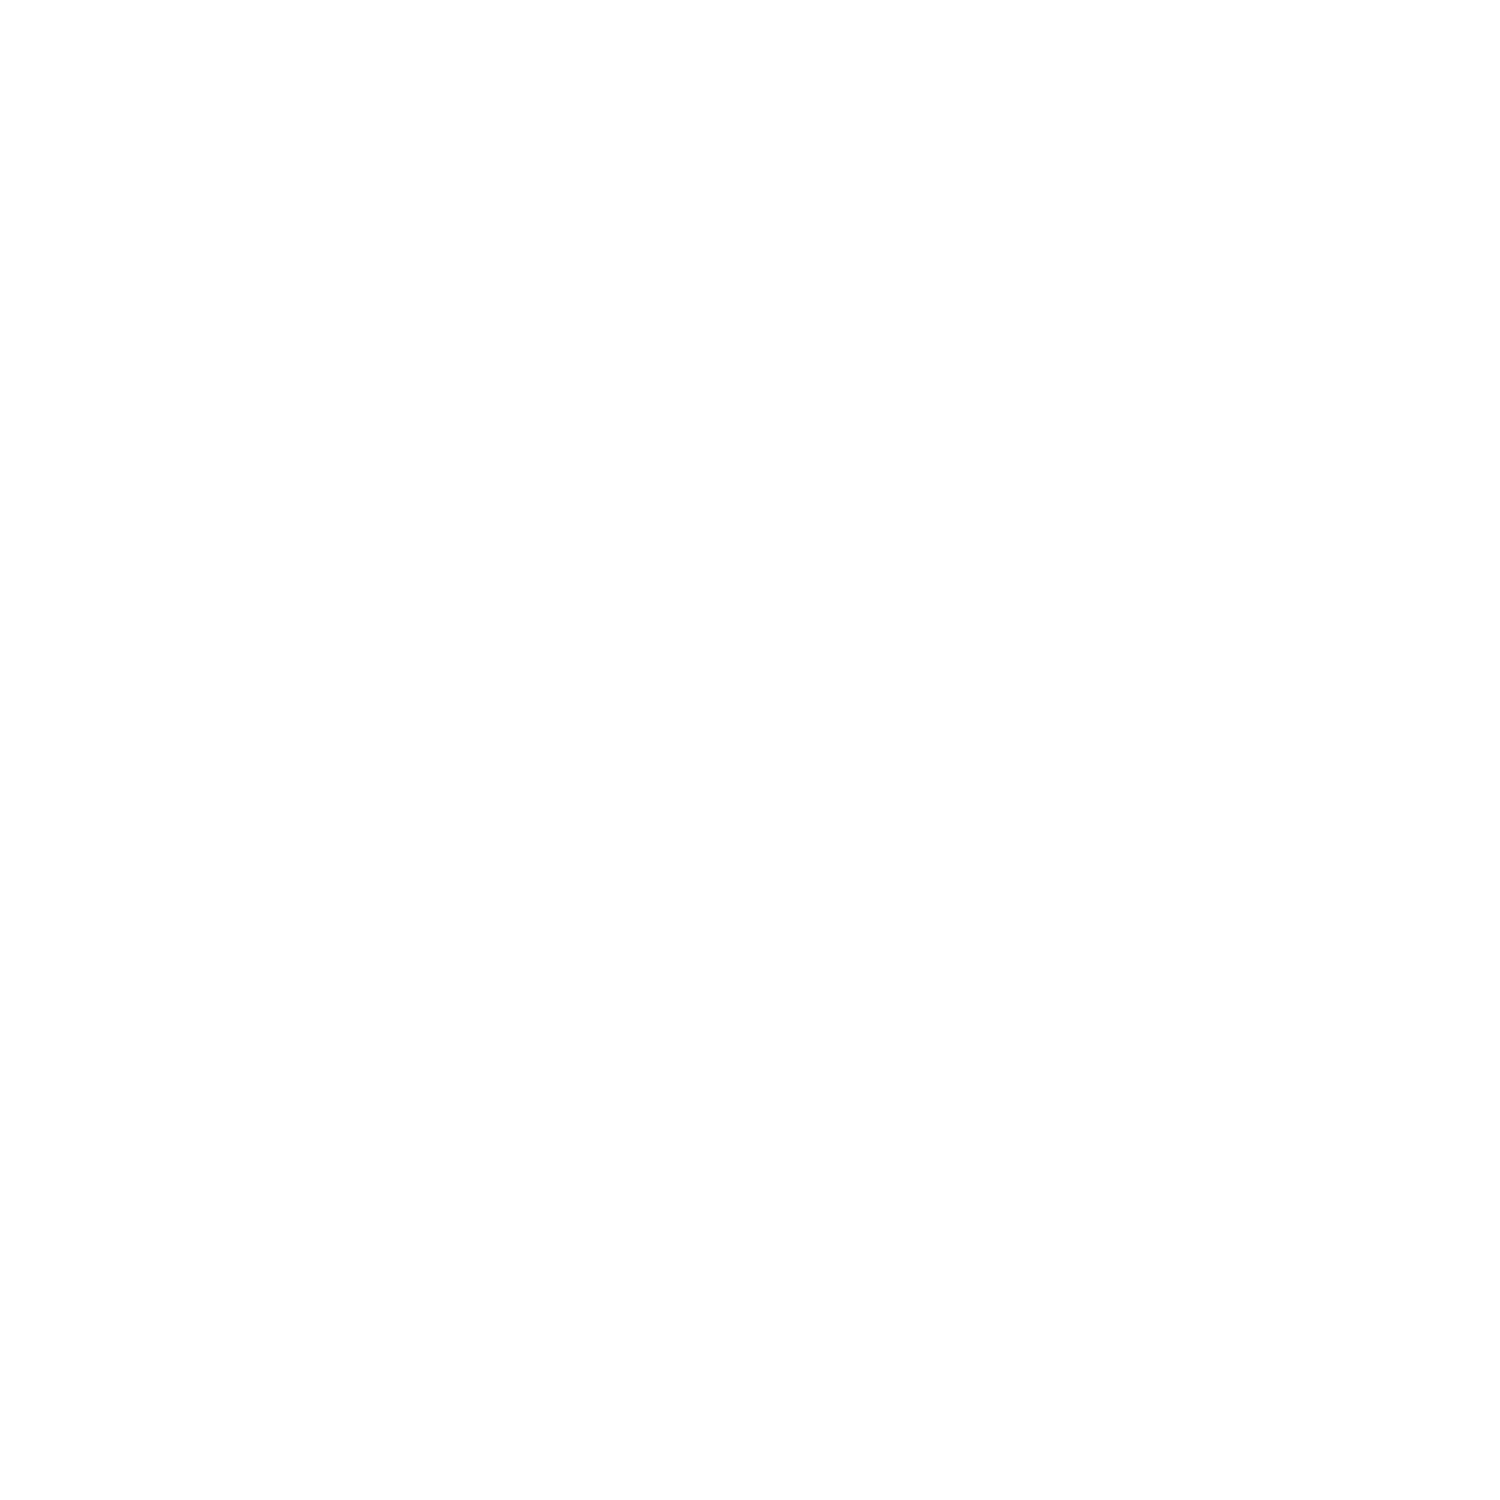 Lauren Alexandra Photography